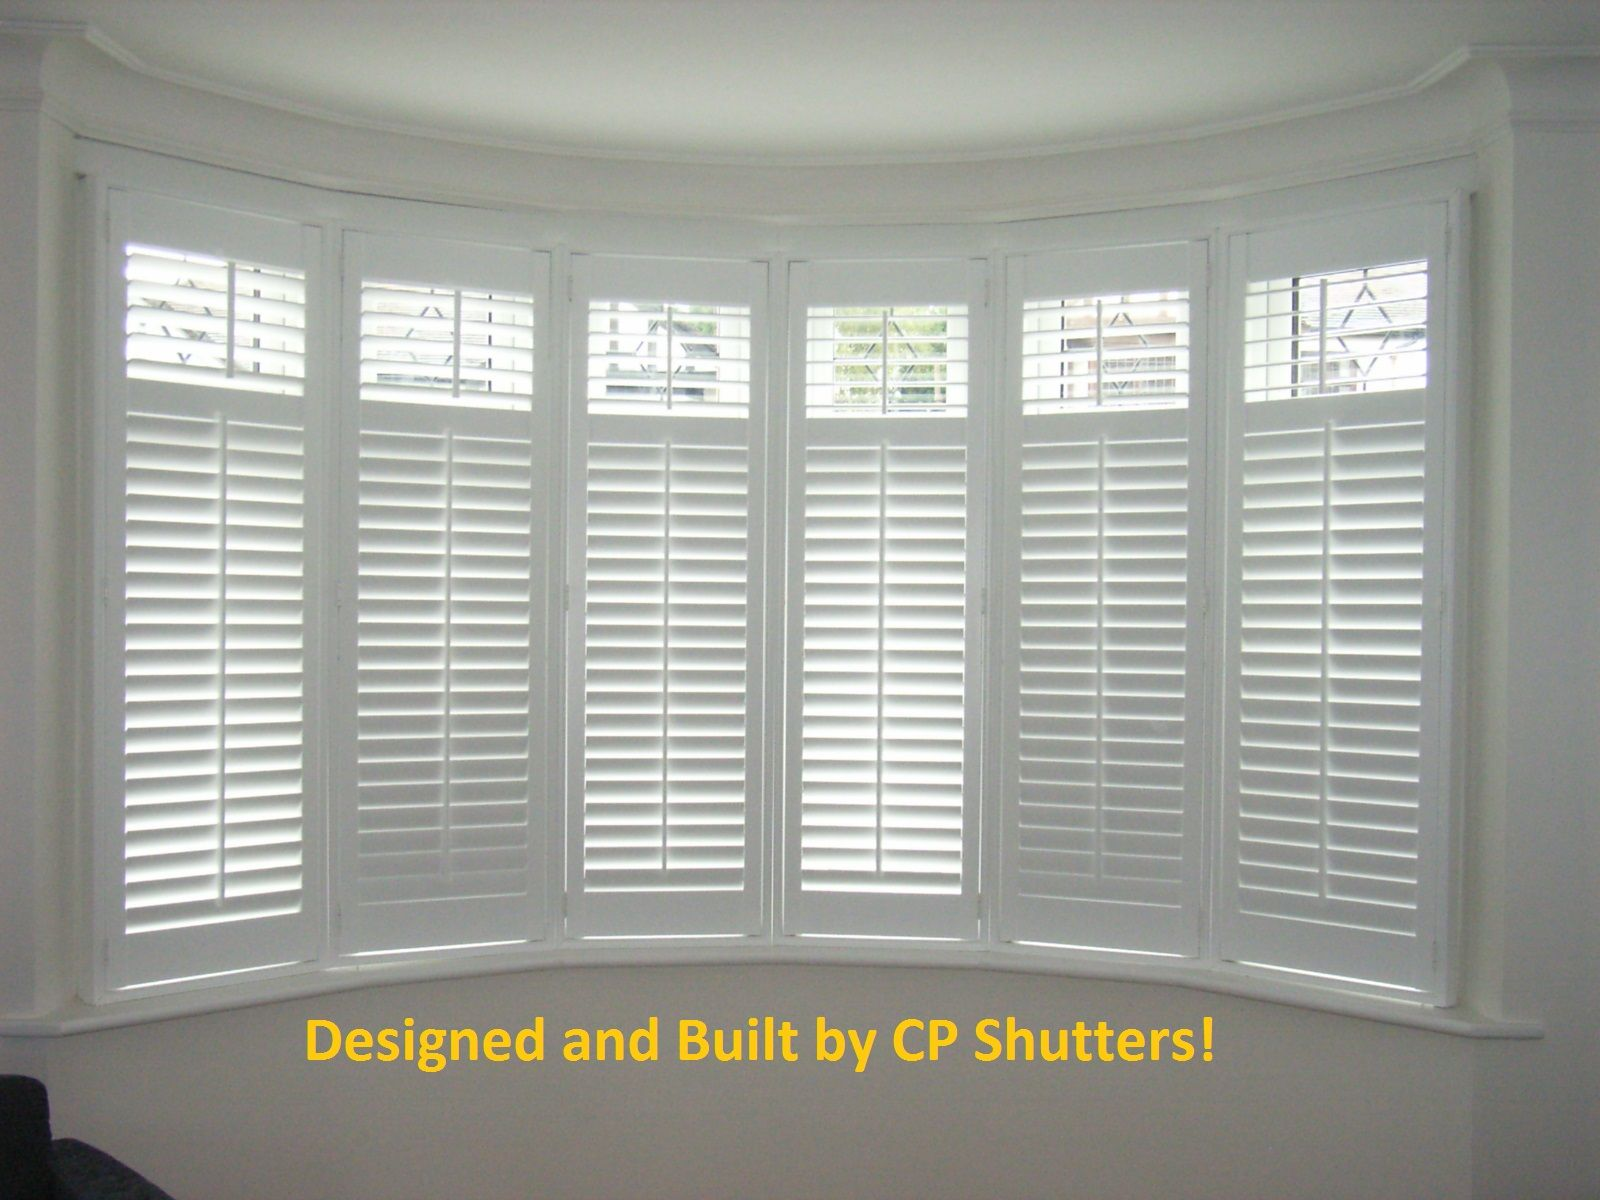 Wooden Shutters Interior Shutters Plantation Shutters Wood Shutters Blinds Awnings Custom